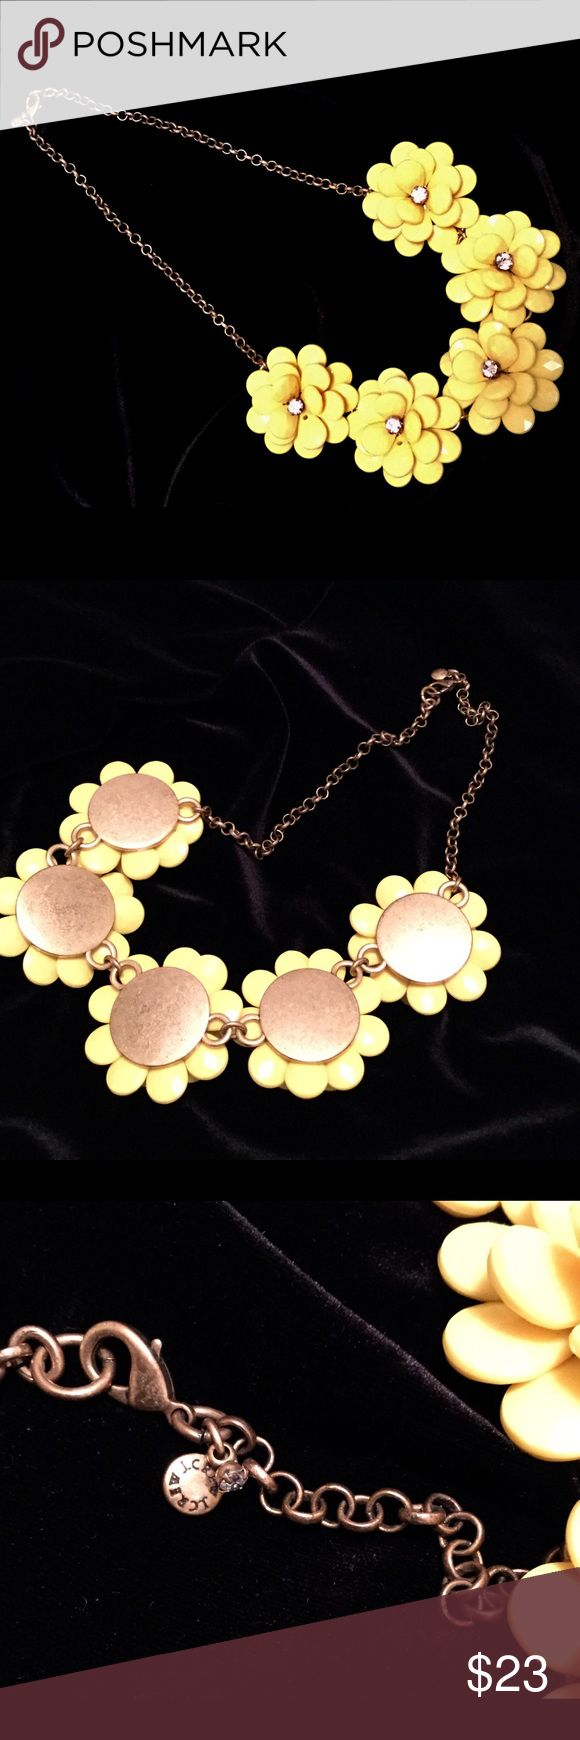 "J. Crew Statement Necklace Very, very pretty yellow flowers on bronze chain. J. Crew is on the clasp with tiny clear rhinestone. Excellent condition, worn once. 21"" total length and adjustable. Comes with bag. J. Crew Jewelry Necklaces"